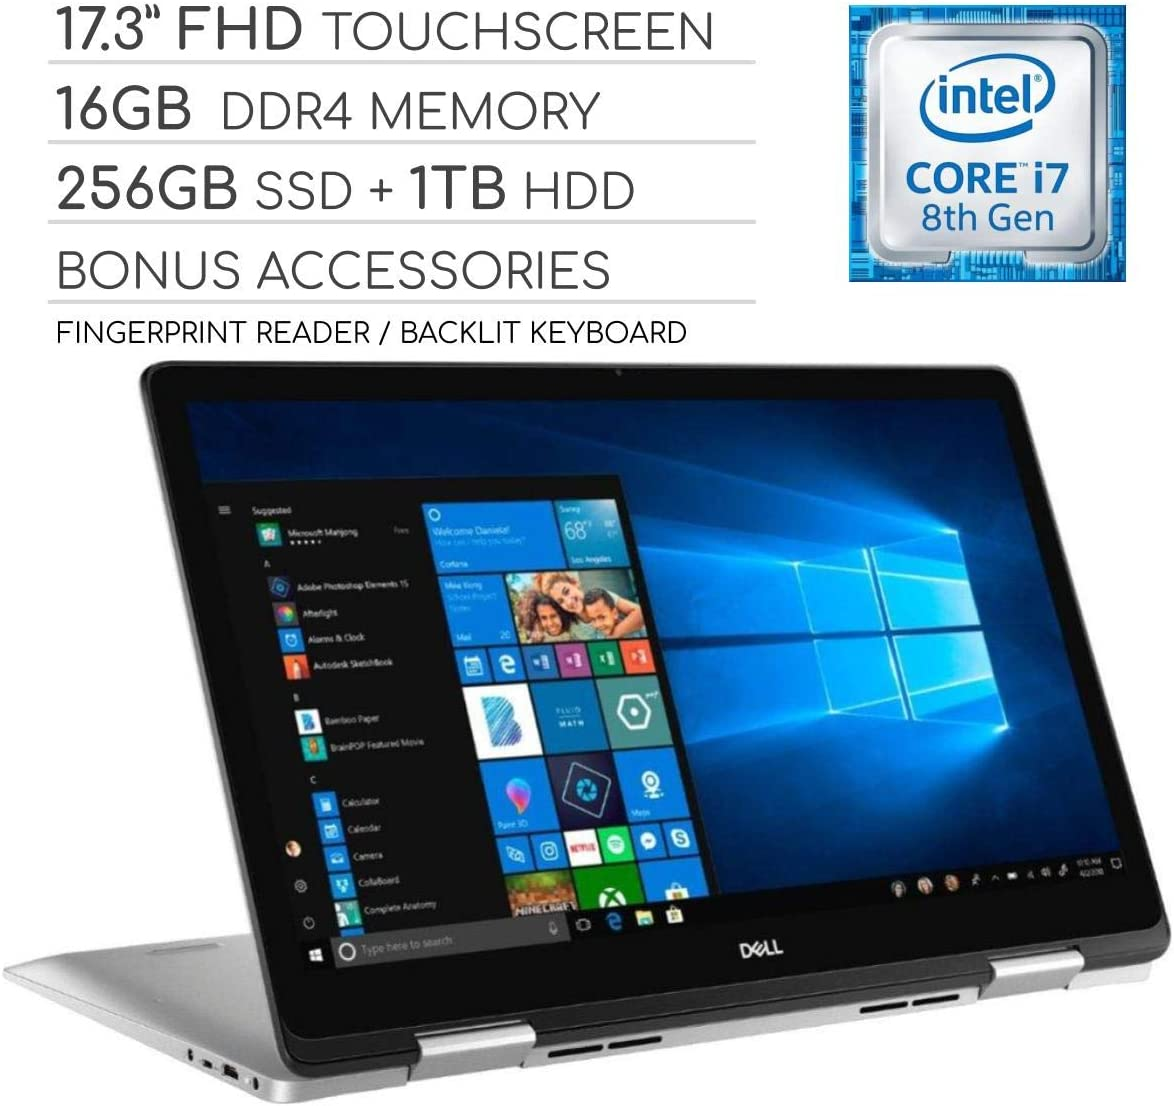 "Dell Inspiron 17 7000 Series 2019 2-in-1 17.3"" FHD Touchscreen Laptop, 4-Core Intel Core i7-8565U 1.8GHz, 16GB RAM, 256GB SSD + 1TB HDD, Backlit Keyboard, Wi-Fi, Bluetooth, Webcam, HDMI, Windows 10"